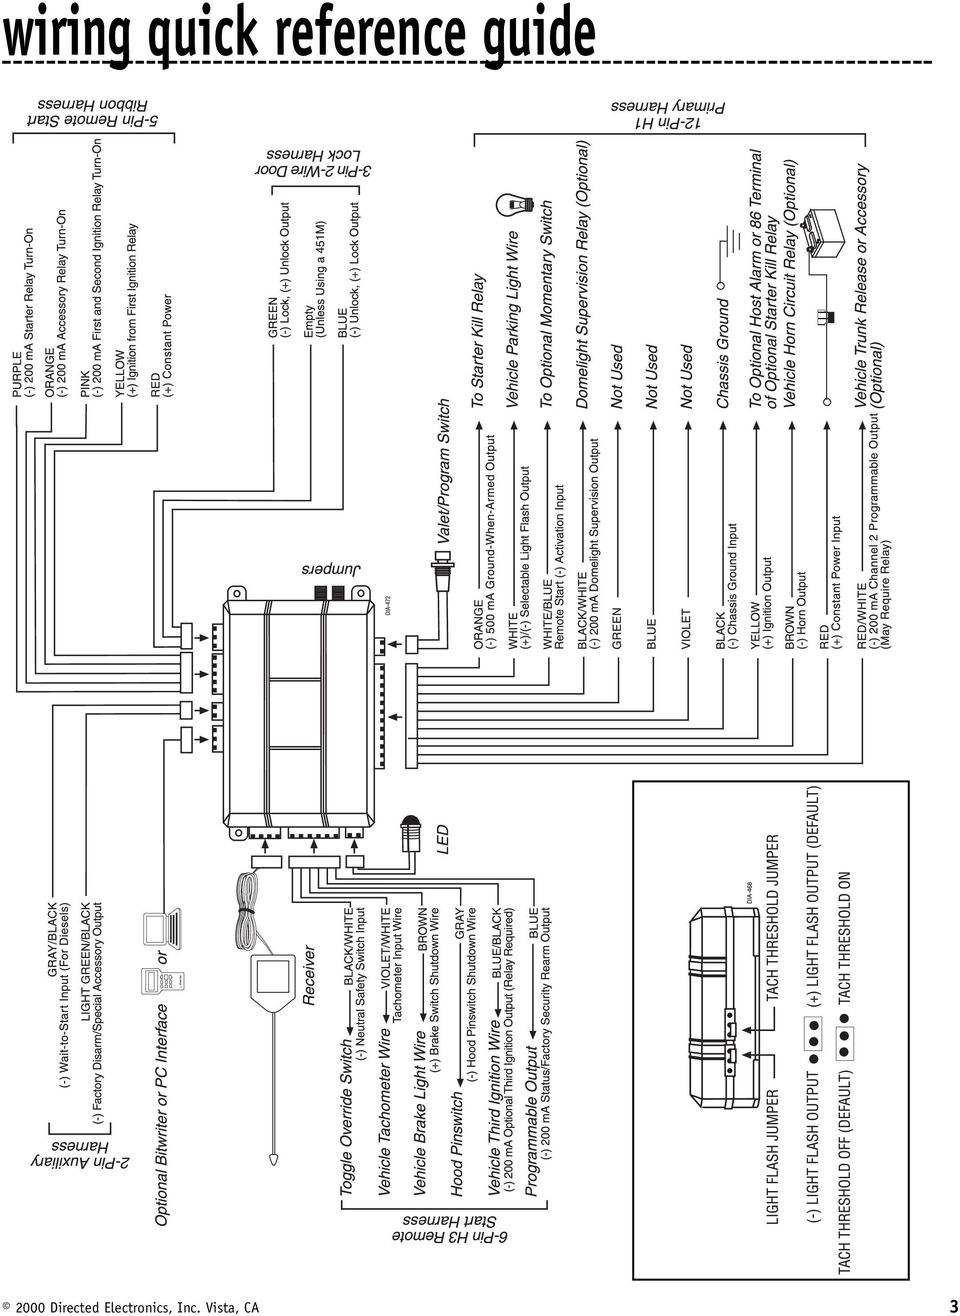 Valet 552t Wiring Diagram on remote car starter diagram